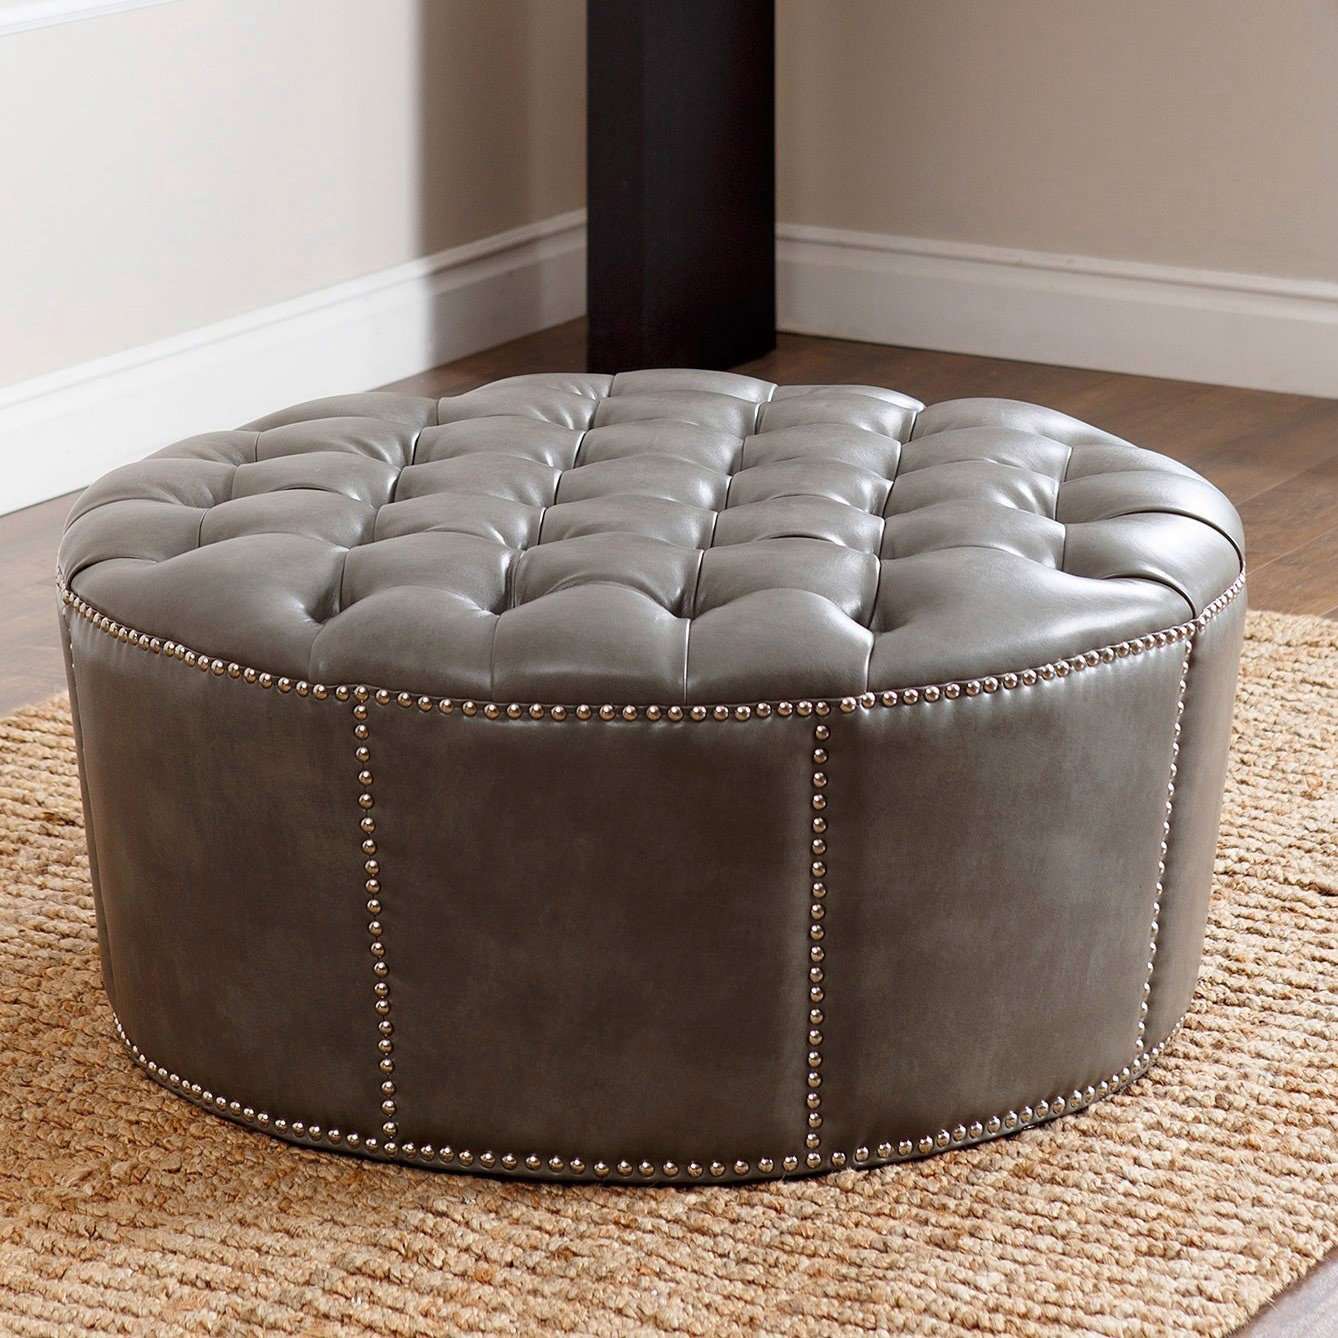 Abbyson Living Leather Ottoman, Nailhead Trim, Round, Newport Grey